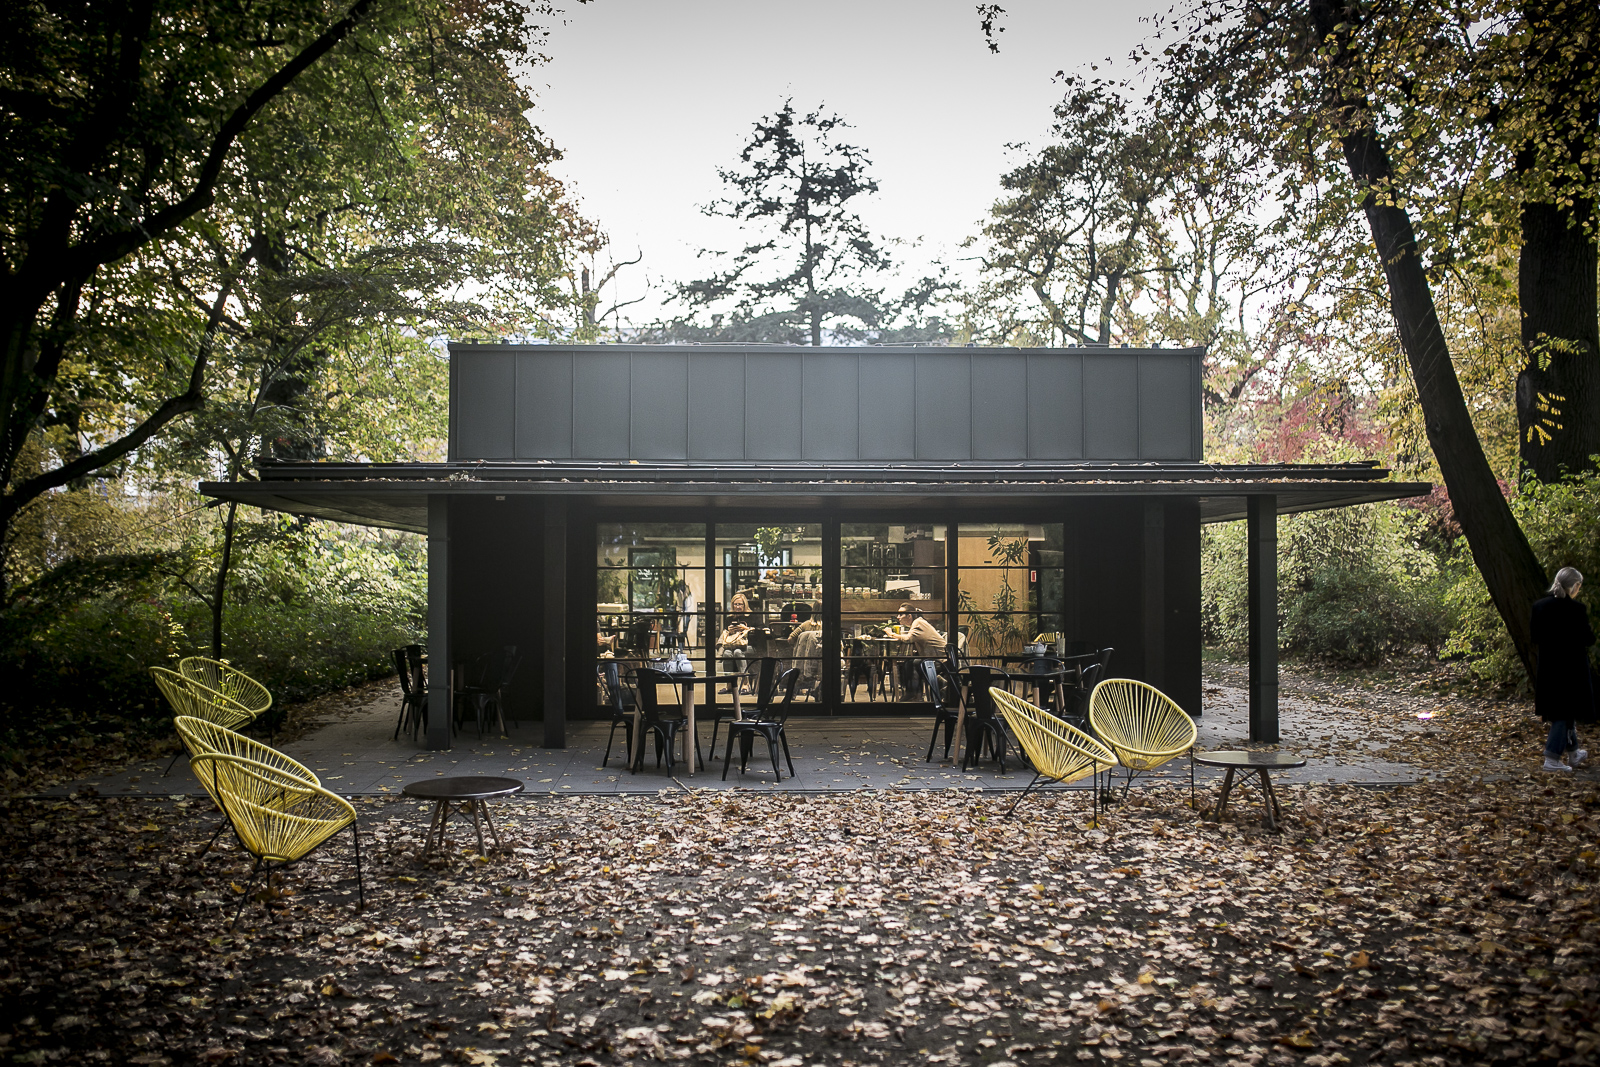 A photograph showing a single-storey building in a park, with fallen autumn leaves around it. Deck-chairs in front of the pavilion.